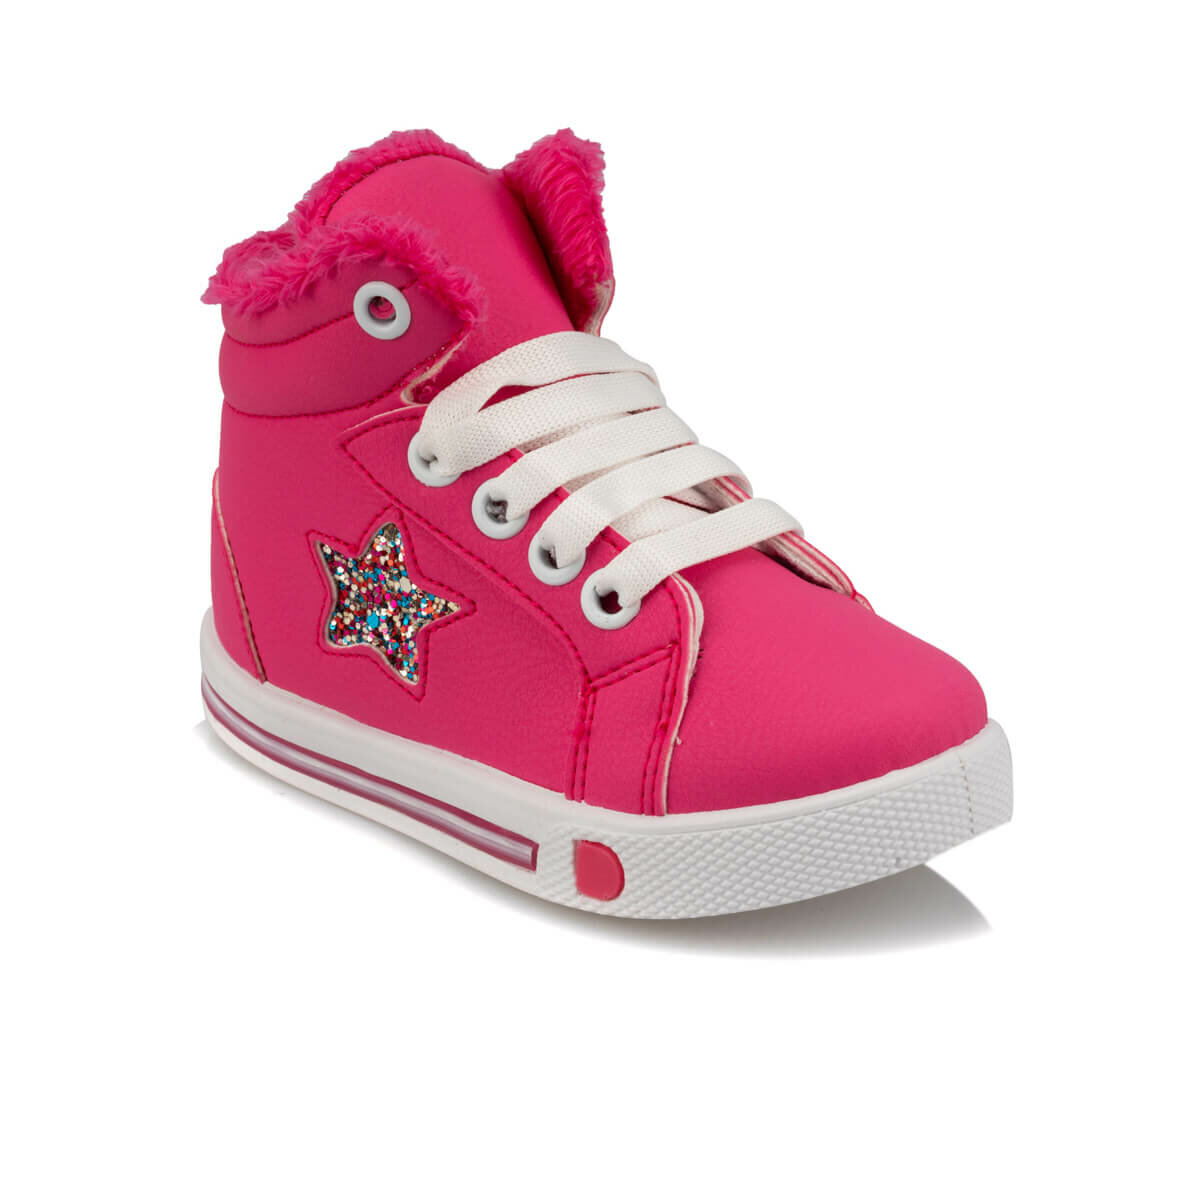 FLO 92.510832.B Fuchsia Female Child Sneaker Shoes Polaris